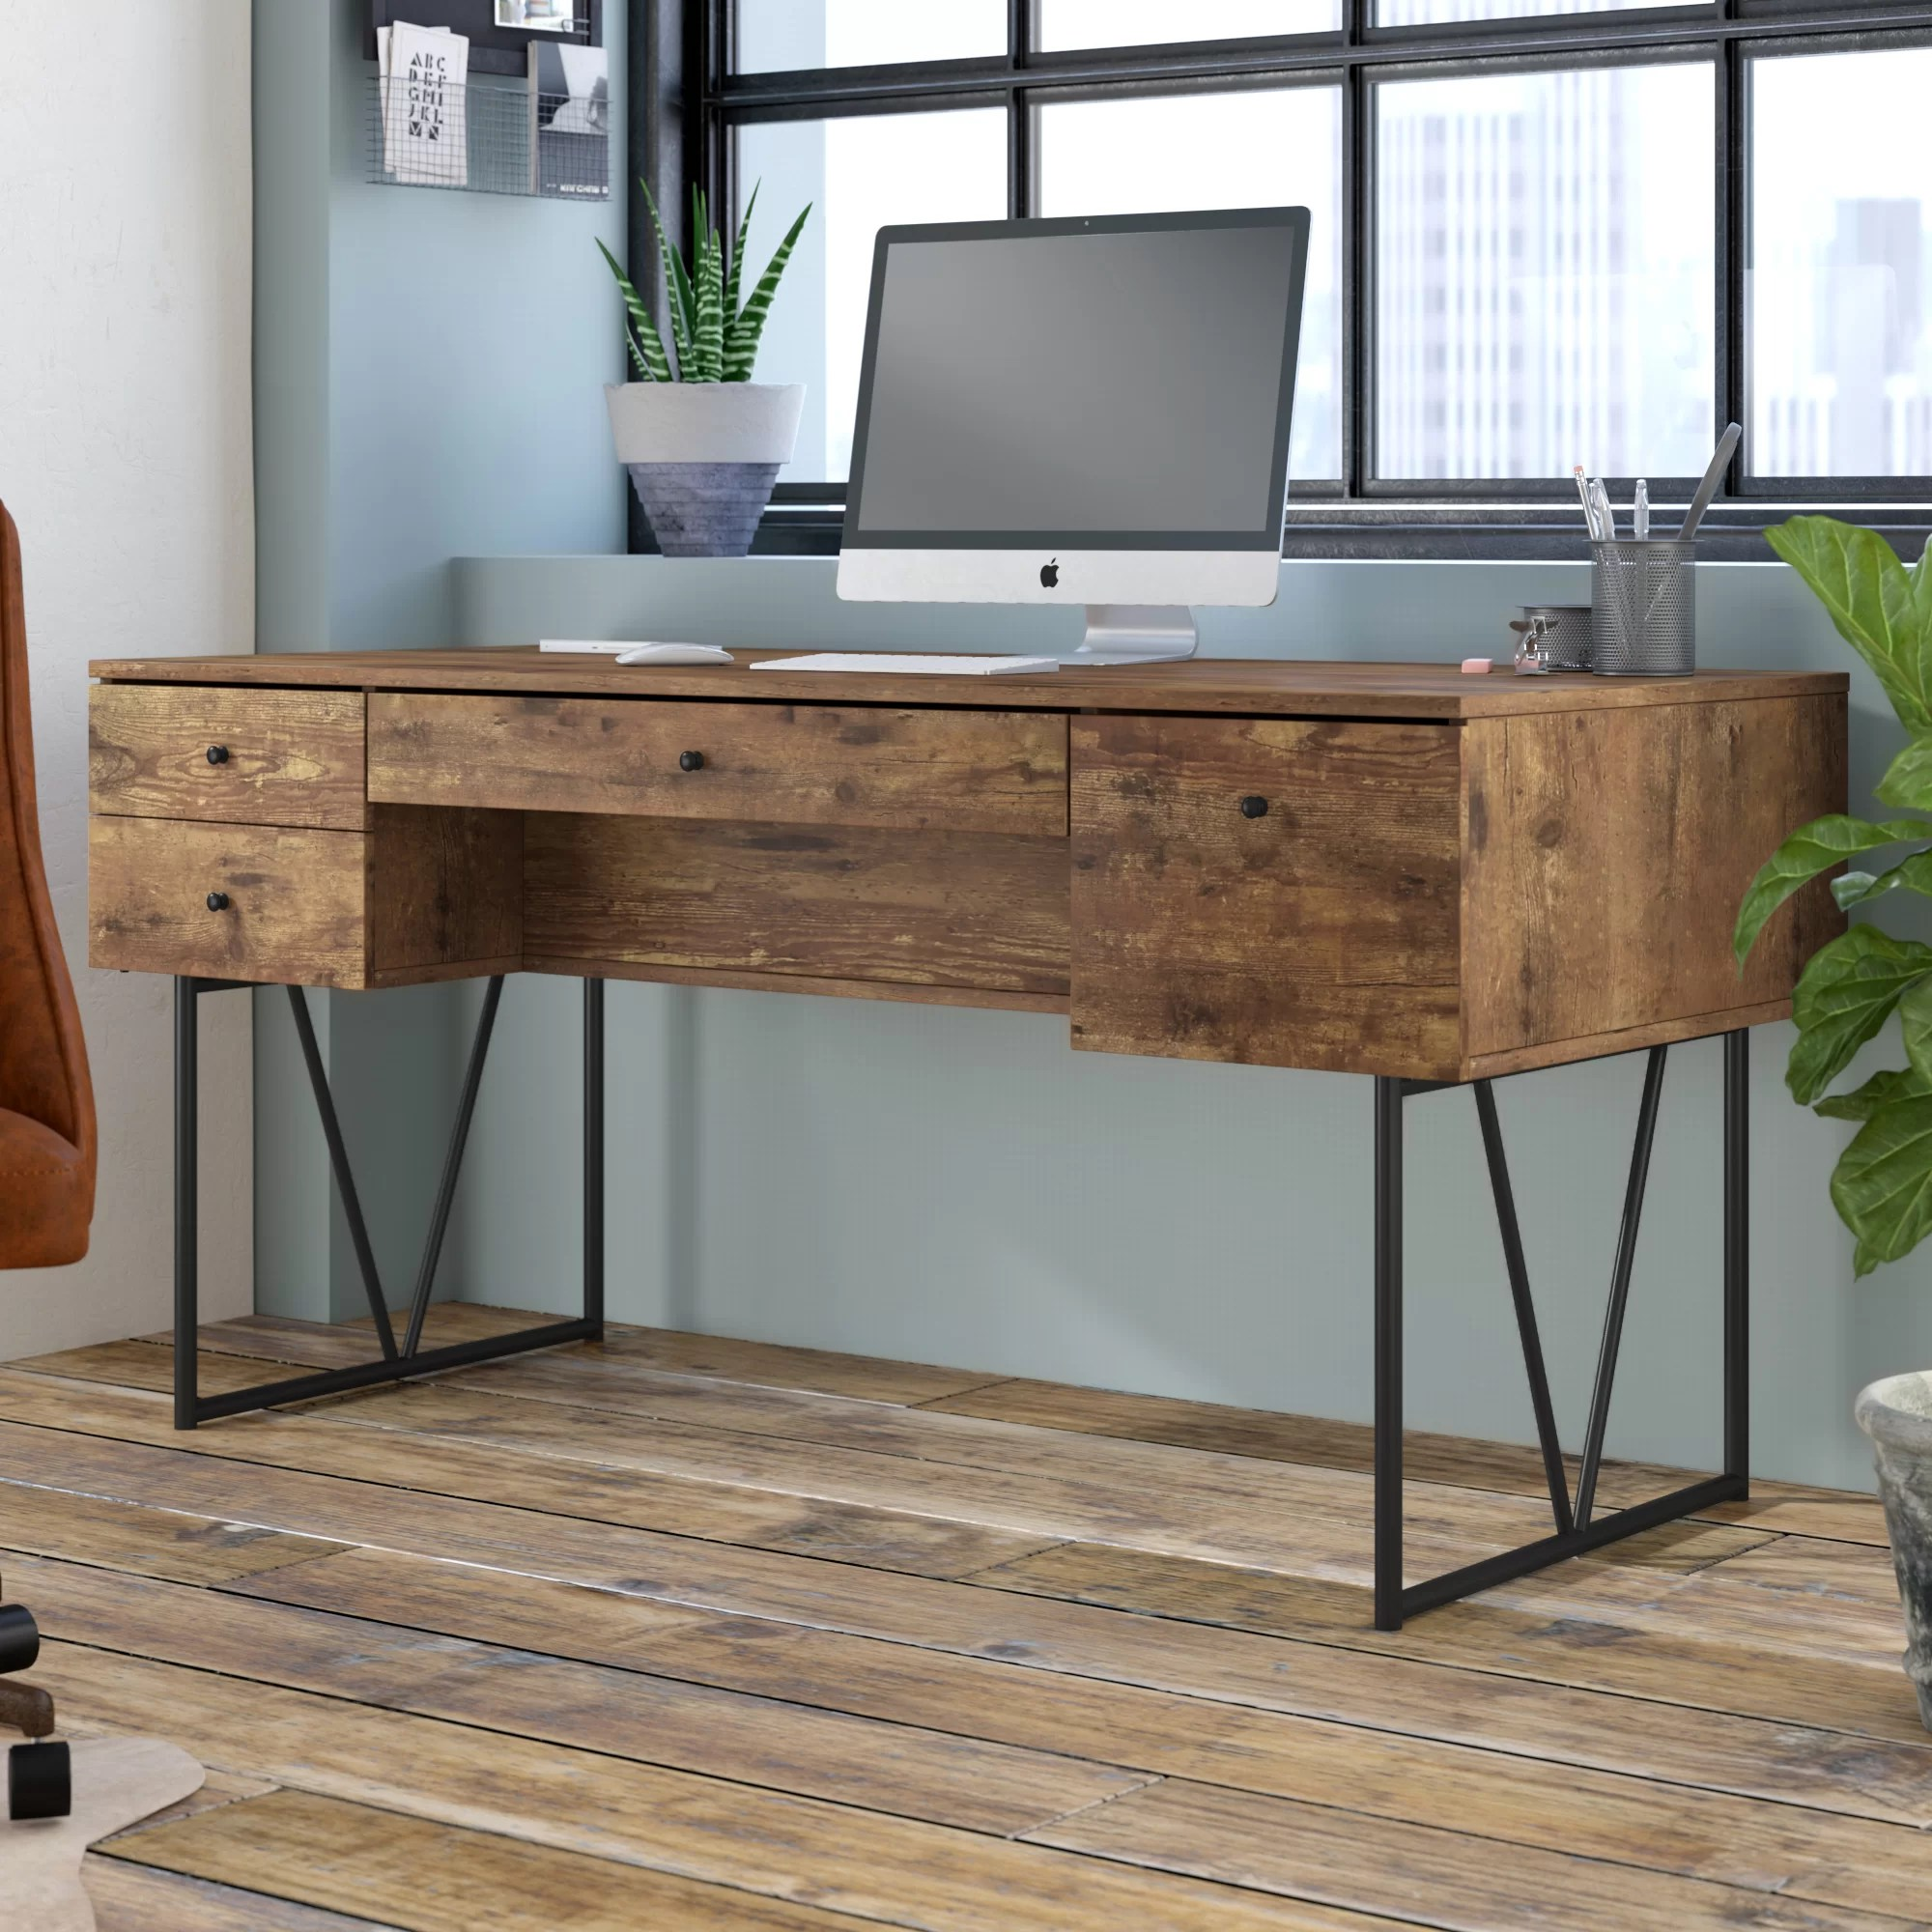 11 Amazing Wood Desks With Drawers For Artists In 2021